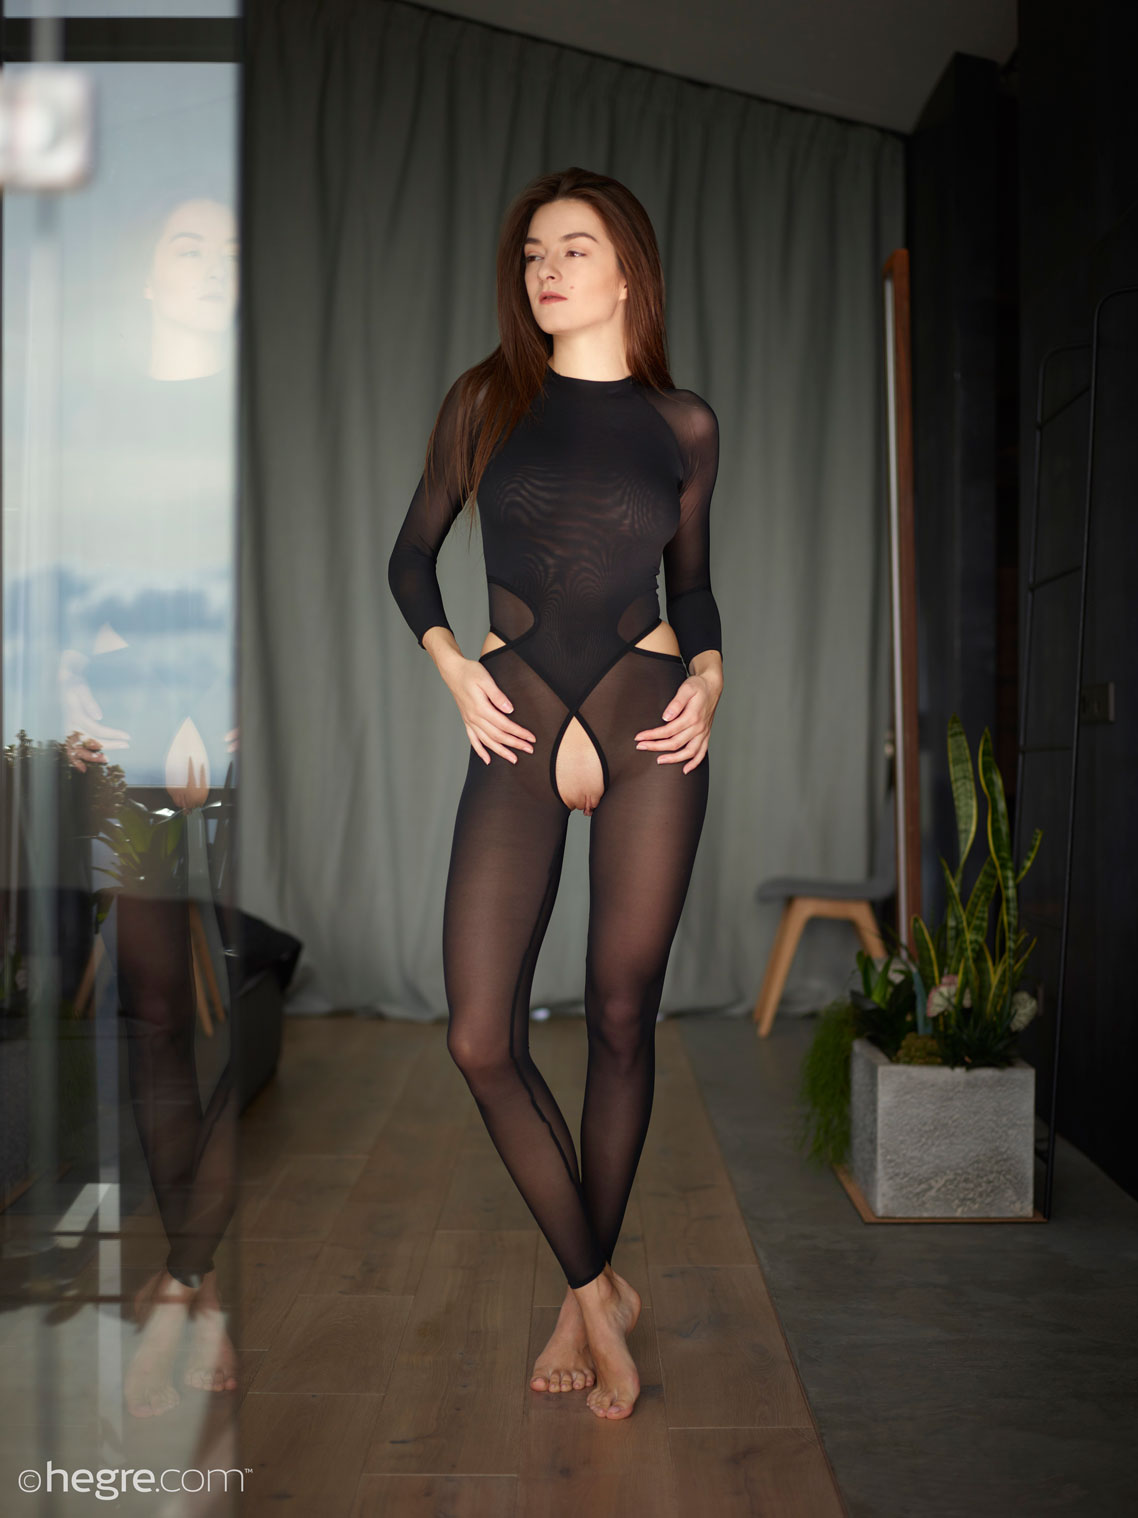 gyrls arina-babe-in-a-catsuit